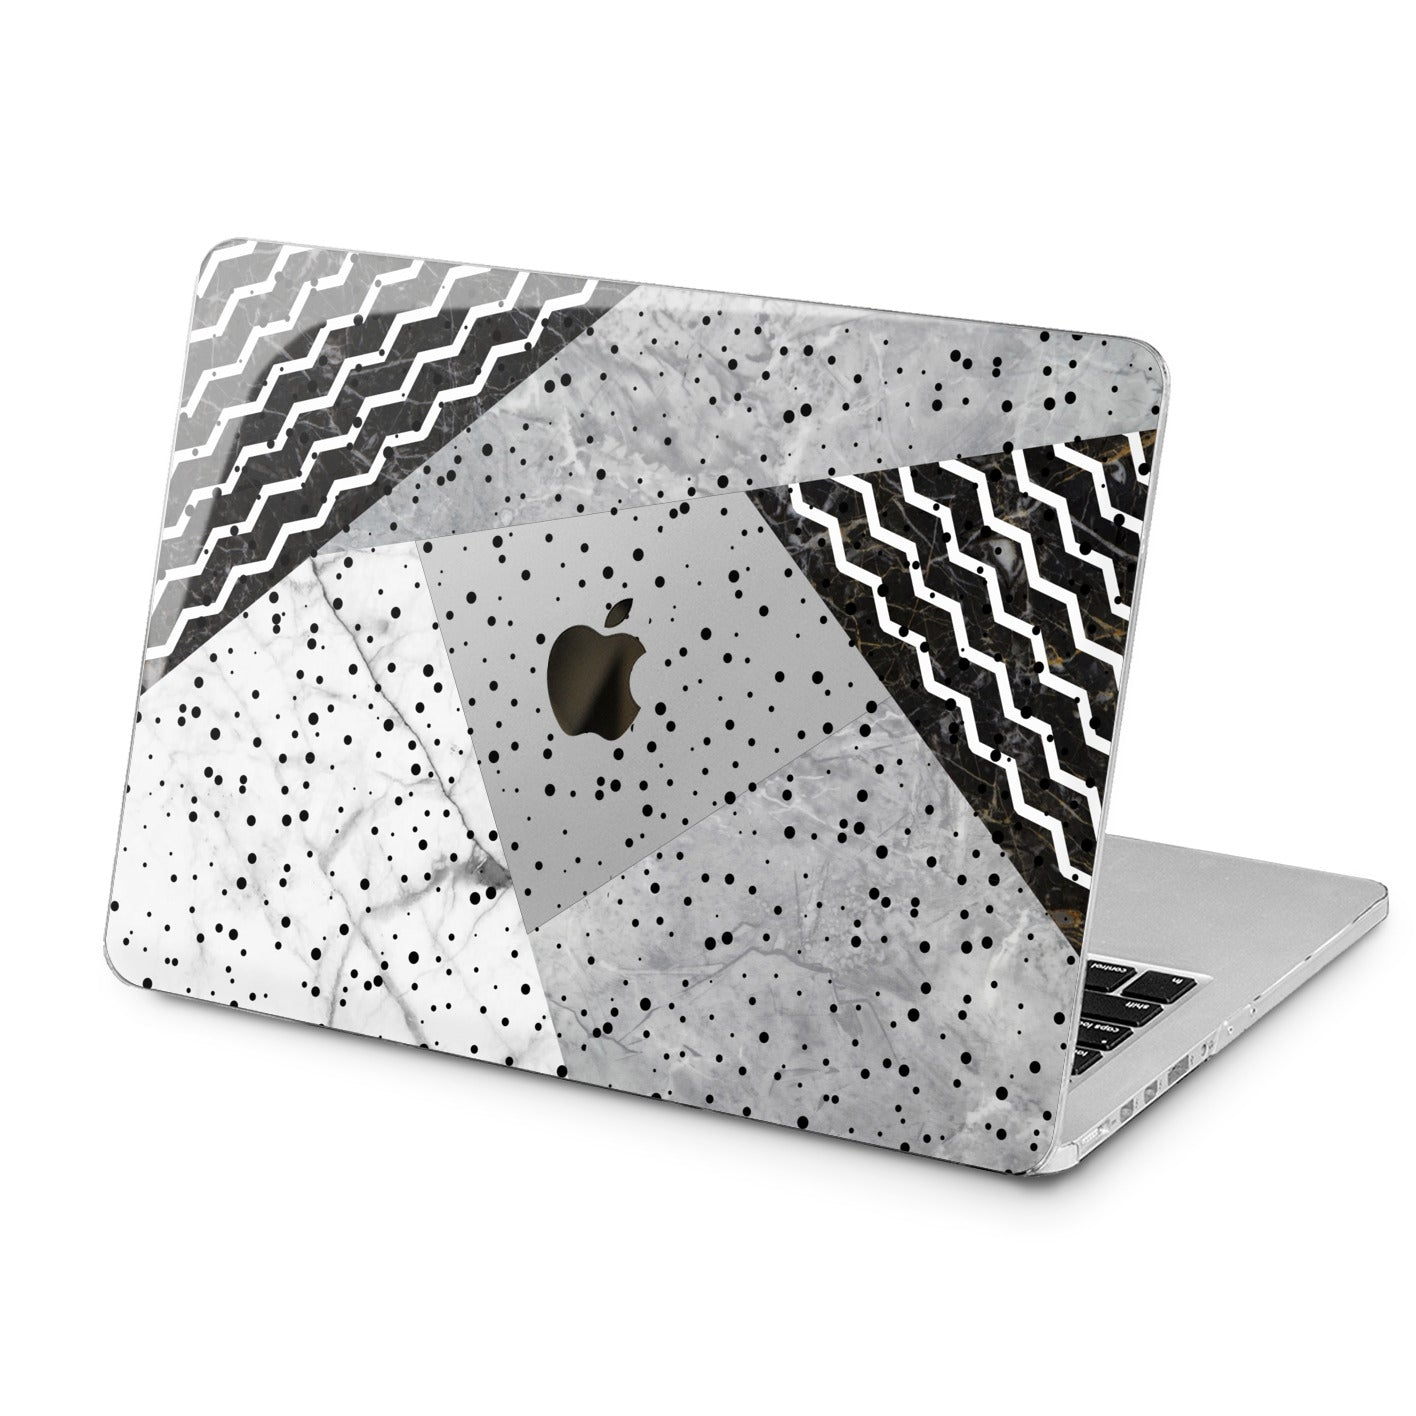 Lex Altern Black and White Art Case for your Laptop Apple Macbook.